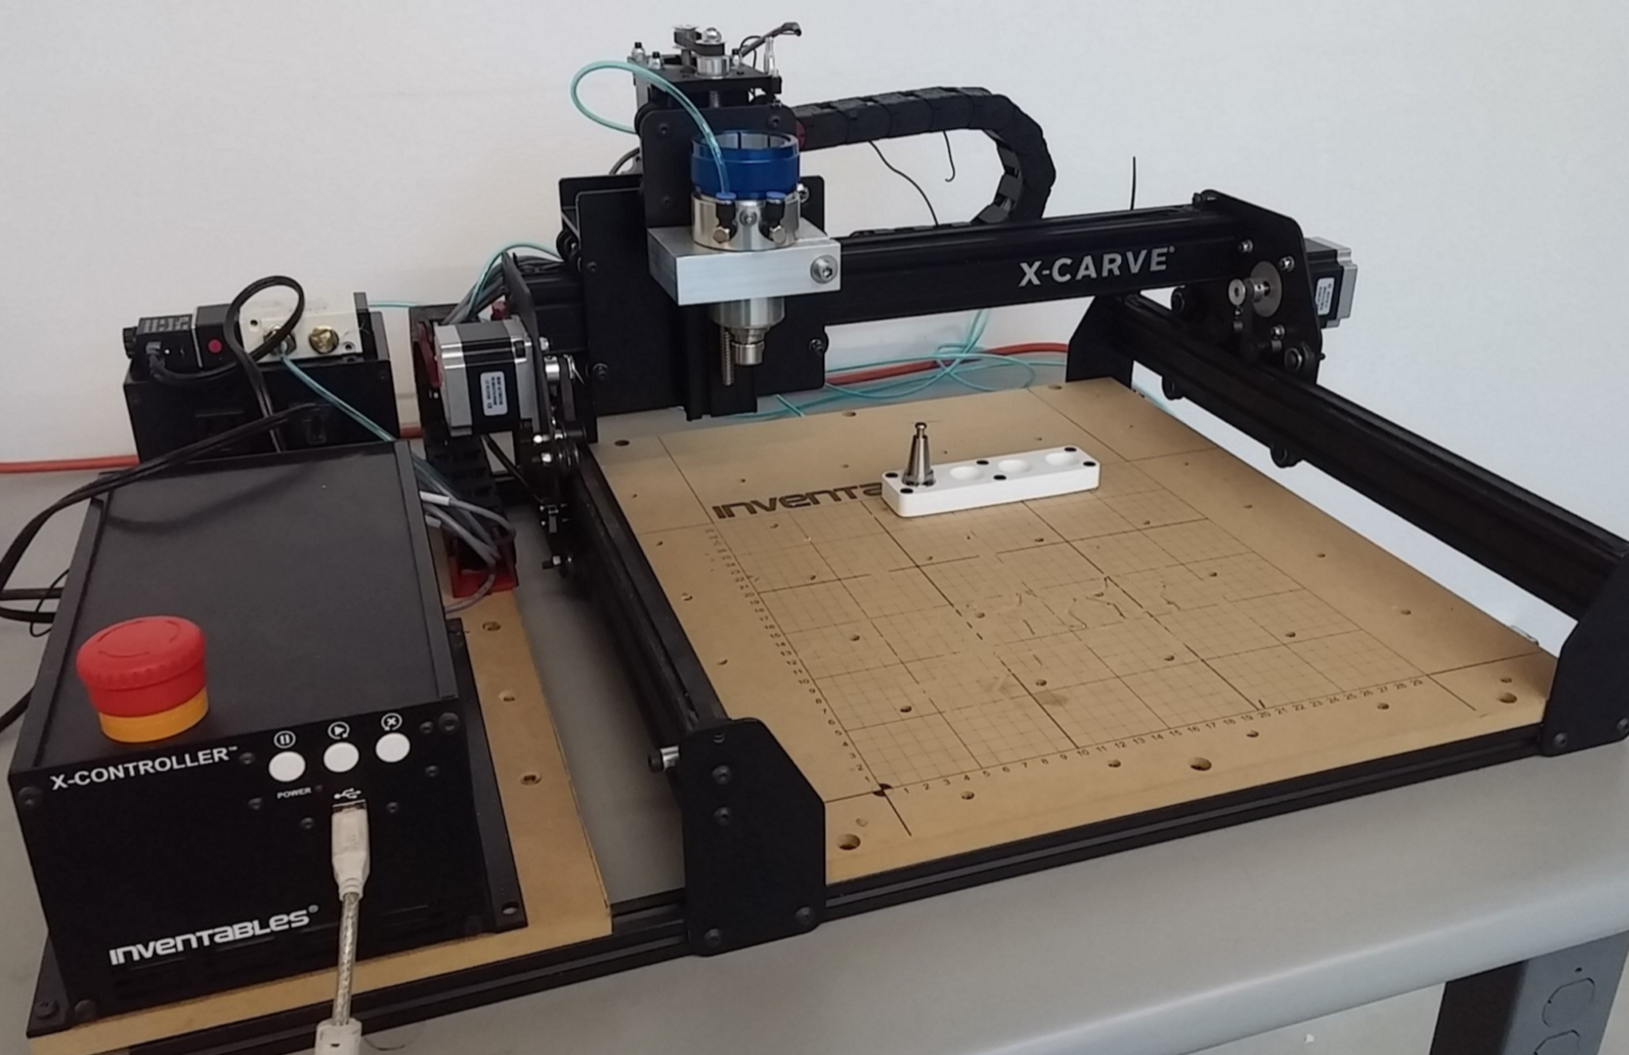 Auto Tool Changer Works Great Upgrades Inventables Community Bldc Cnc Machine Wiring Schematic A Can Really Enhance The Productivity Of Like X Carve When Doing Large Pockets With Fine Detail Quickly Clear